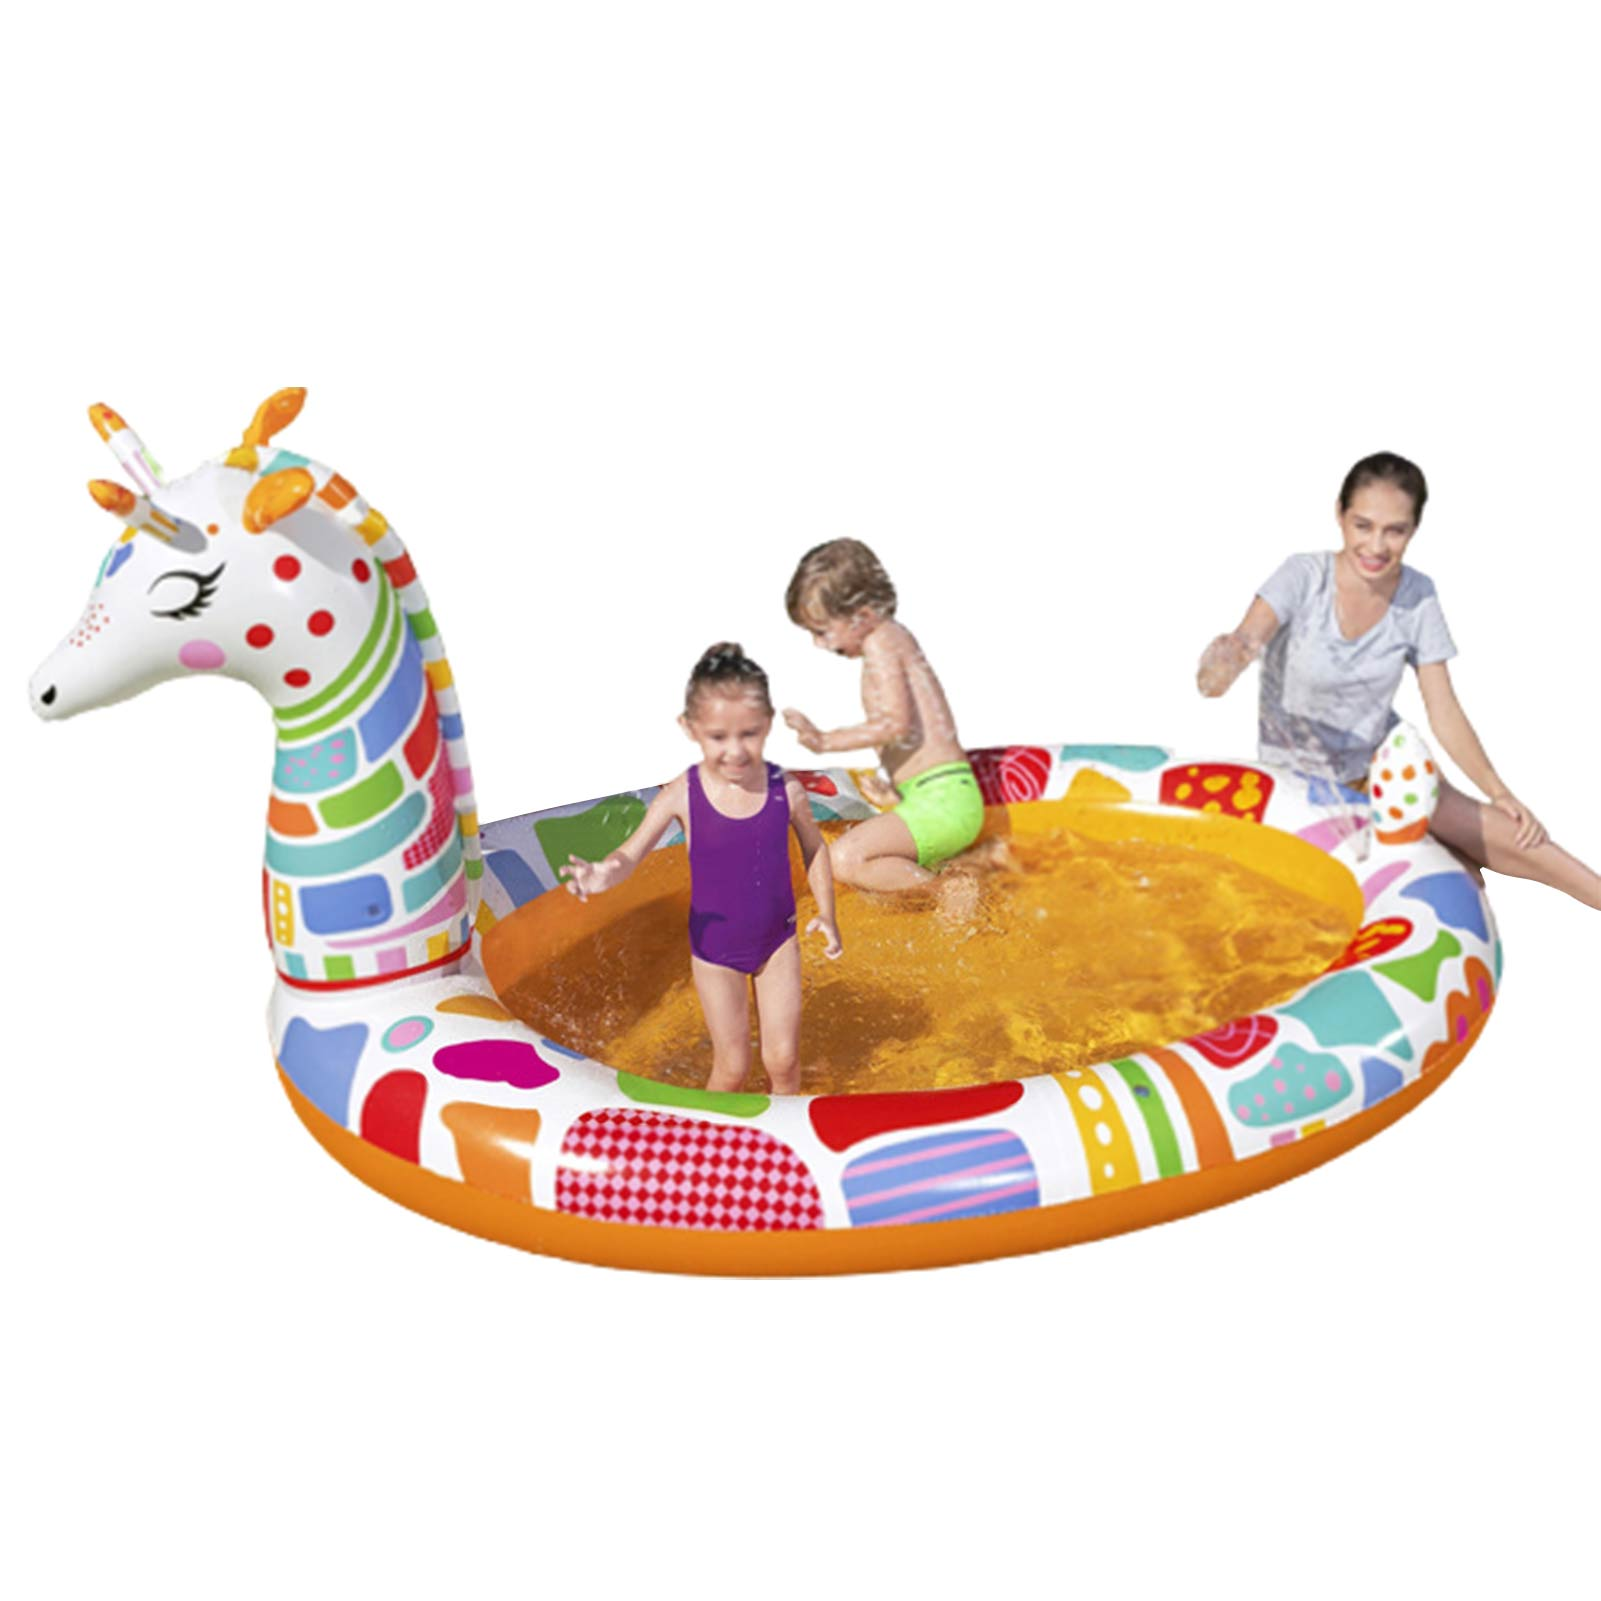 Summer Lovely Inflatable Giraffe Swim Pool Thickened Water Spray Play Center For Kids